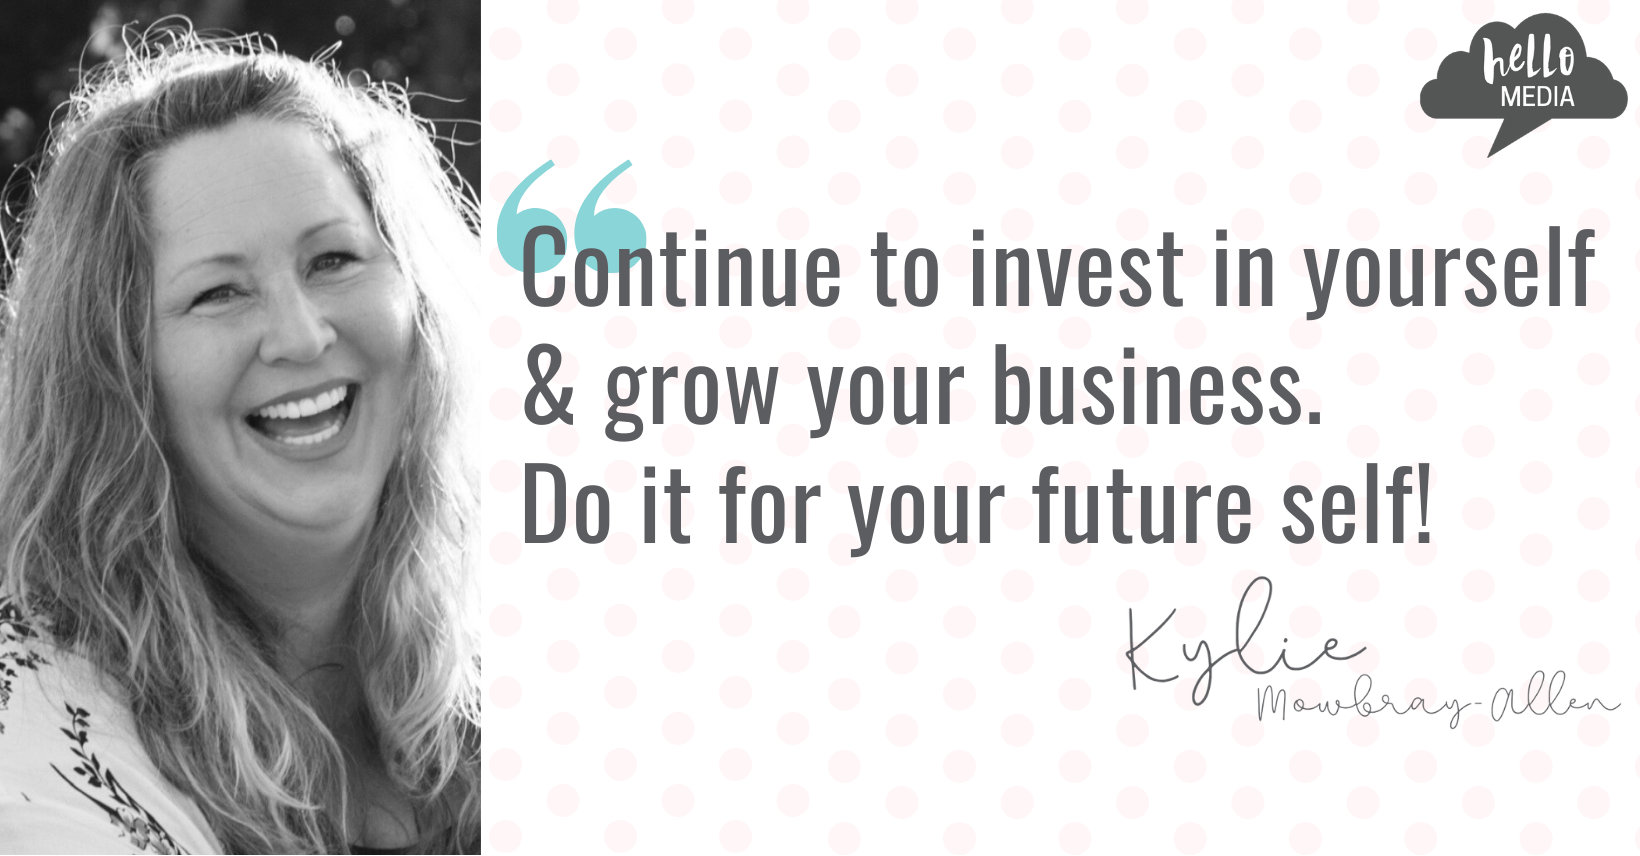 Kylie Mowbray-Allen business coach digital marketing social media strategist